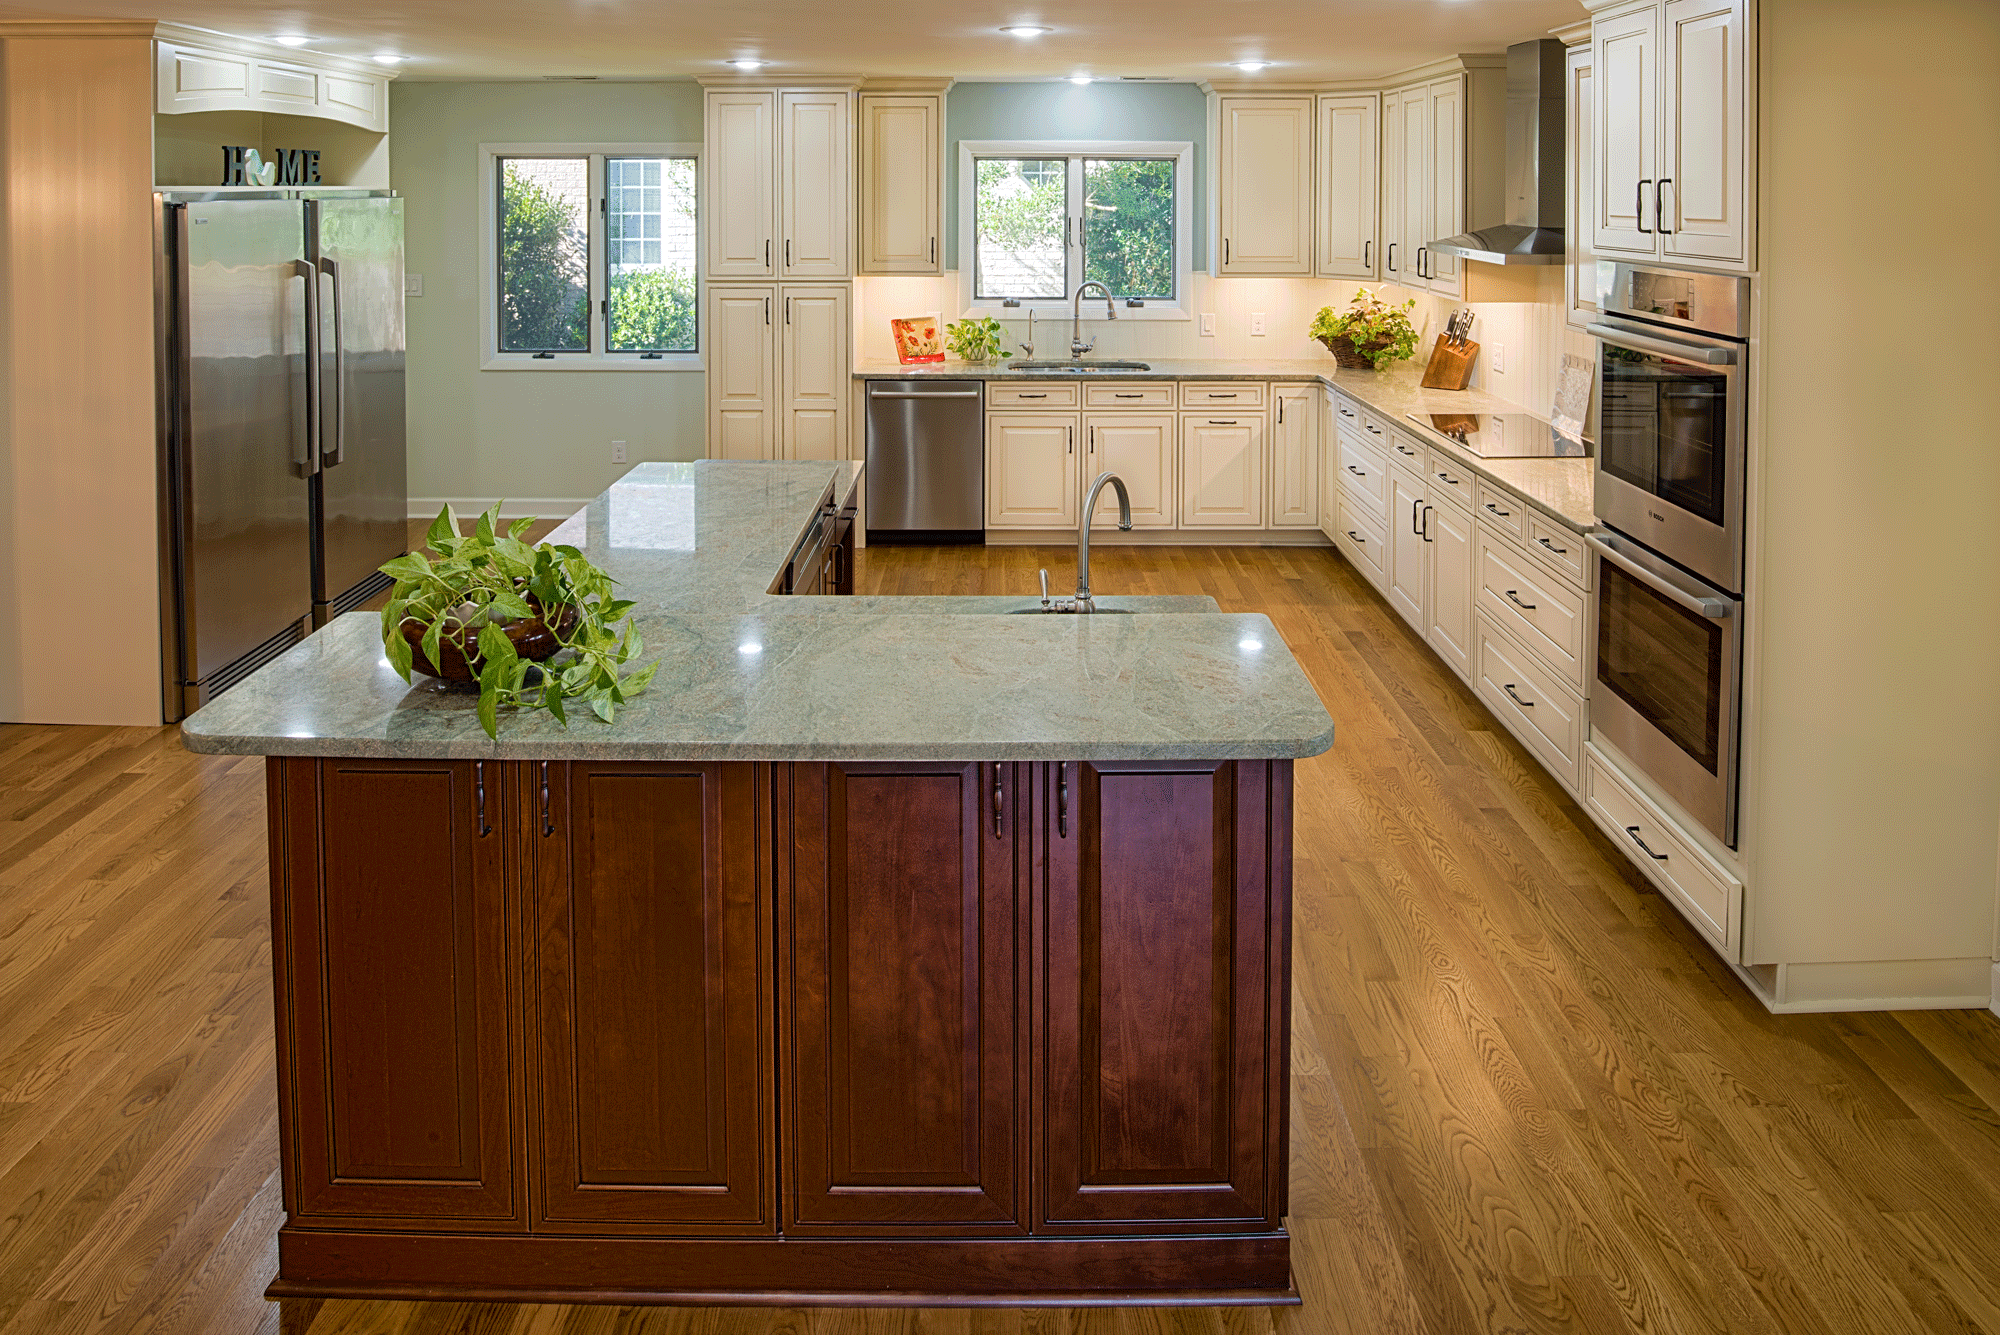 kitchen remodel with mixed cabinetry and decor